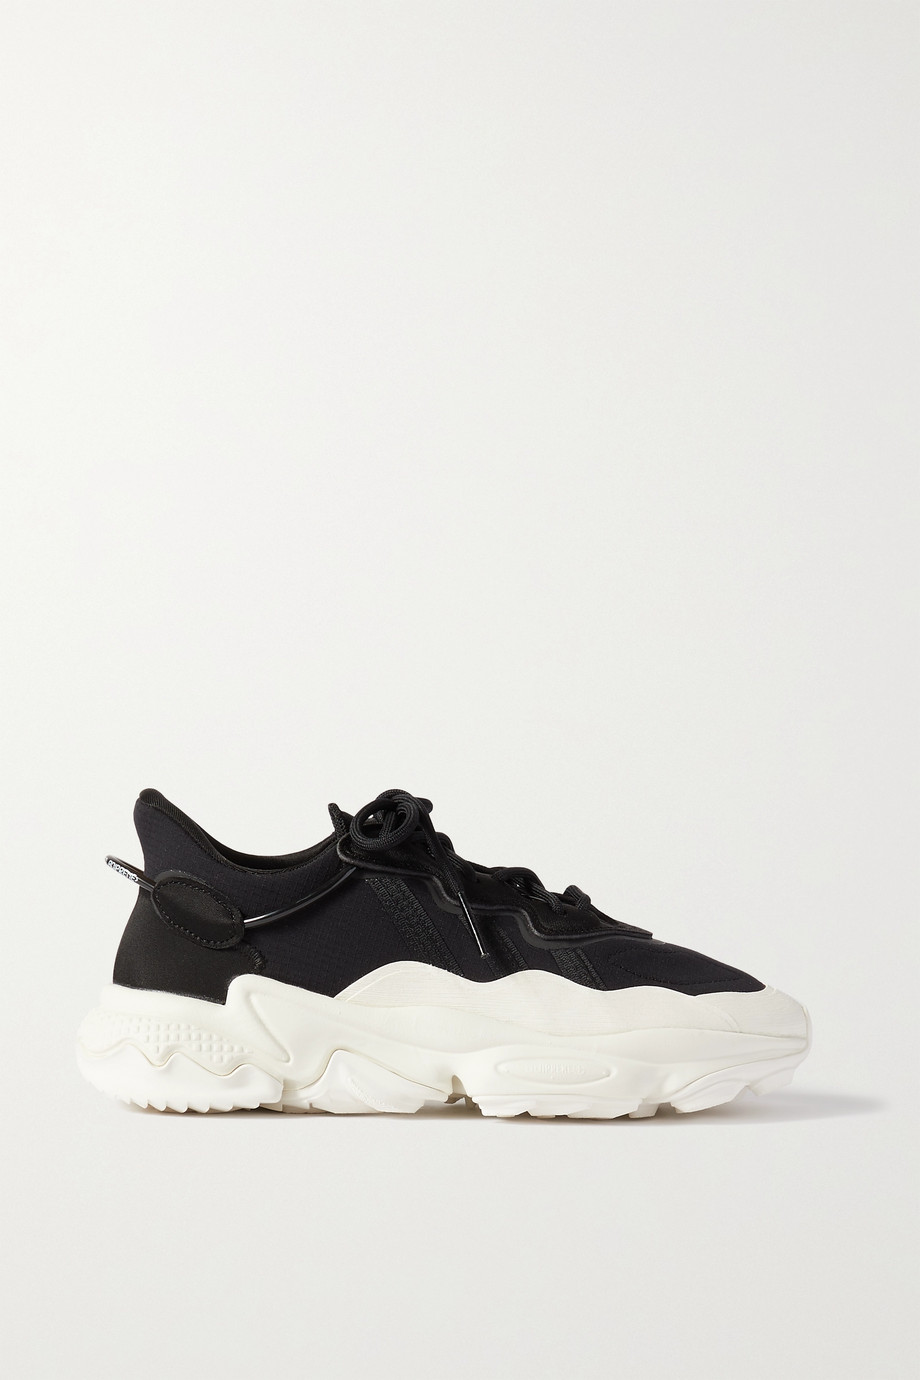 ADIDAS ORIGINALS Ozweego TR rubber-trimmed neoprene sneakers